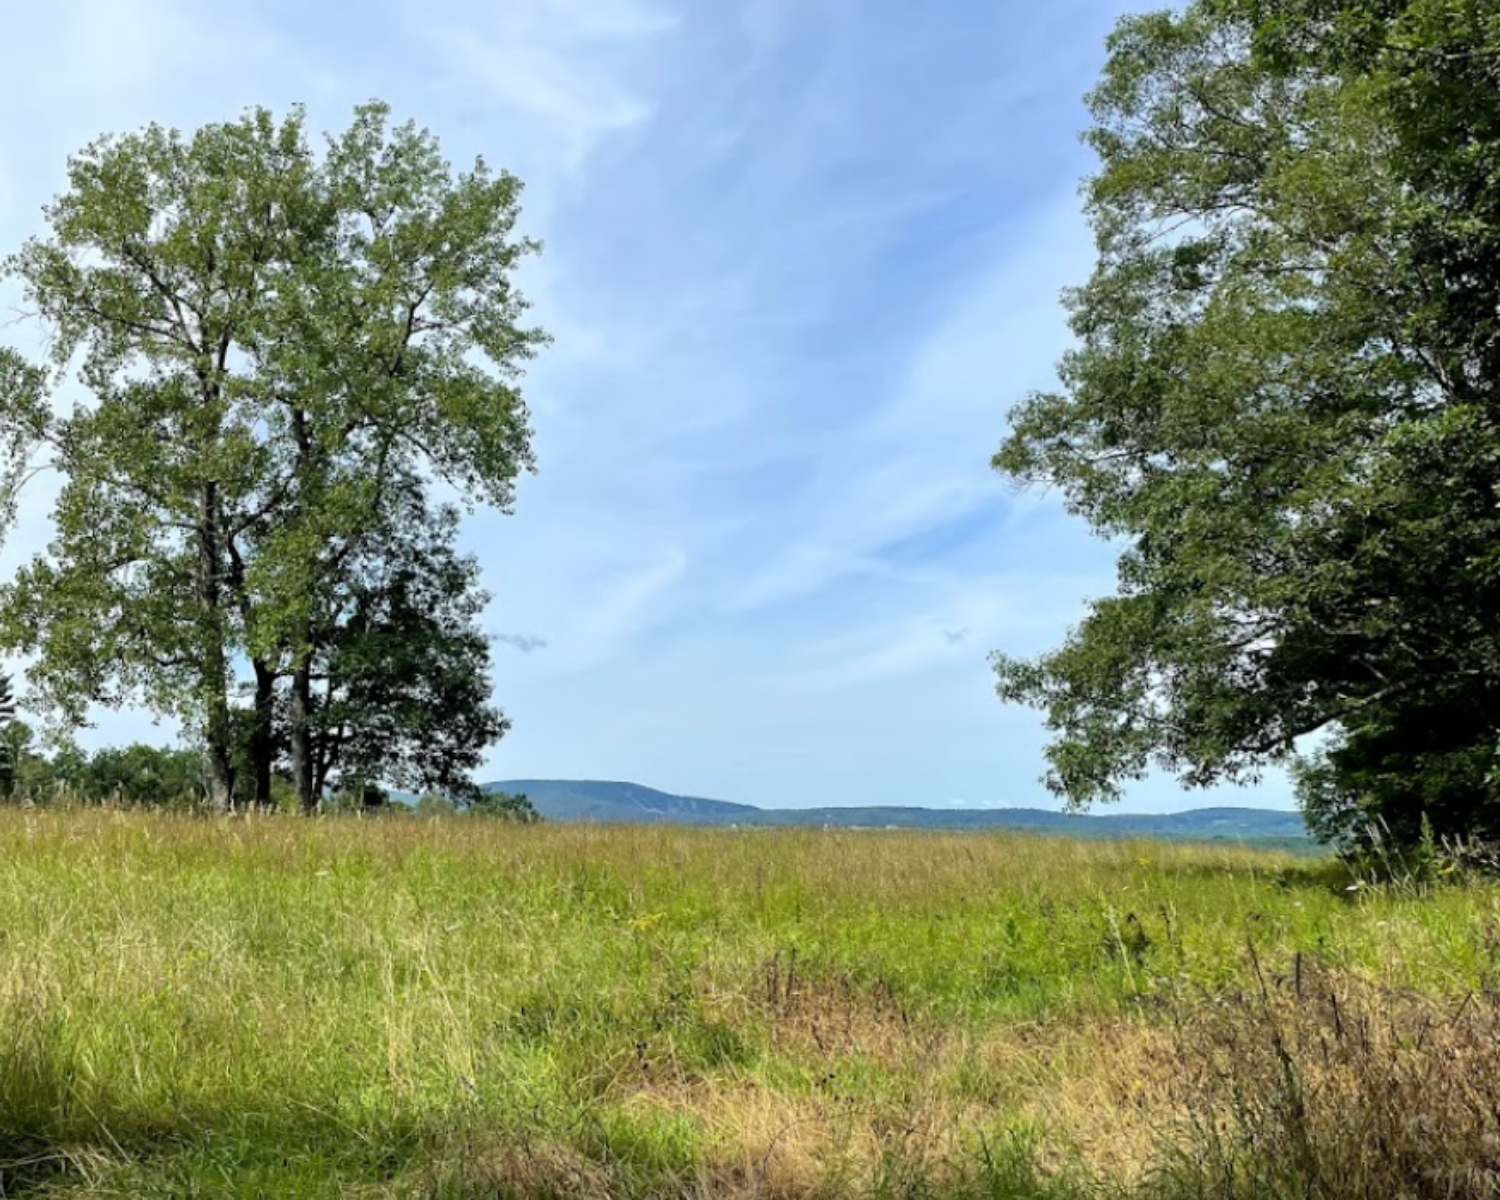 Secret Scenic Walks and Hikes in and around Great Barrington